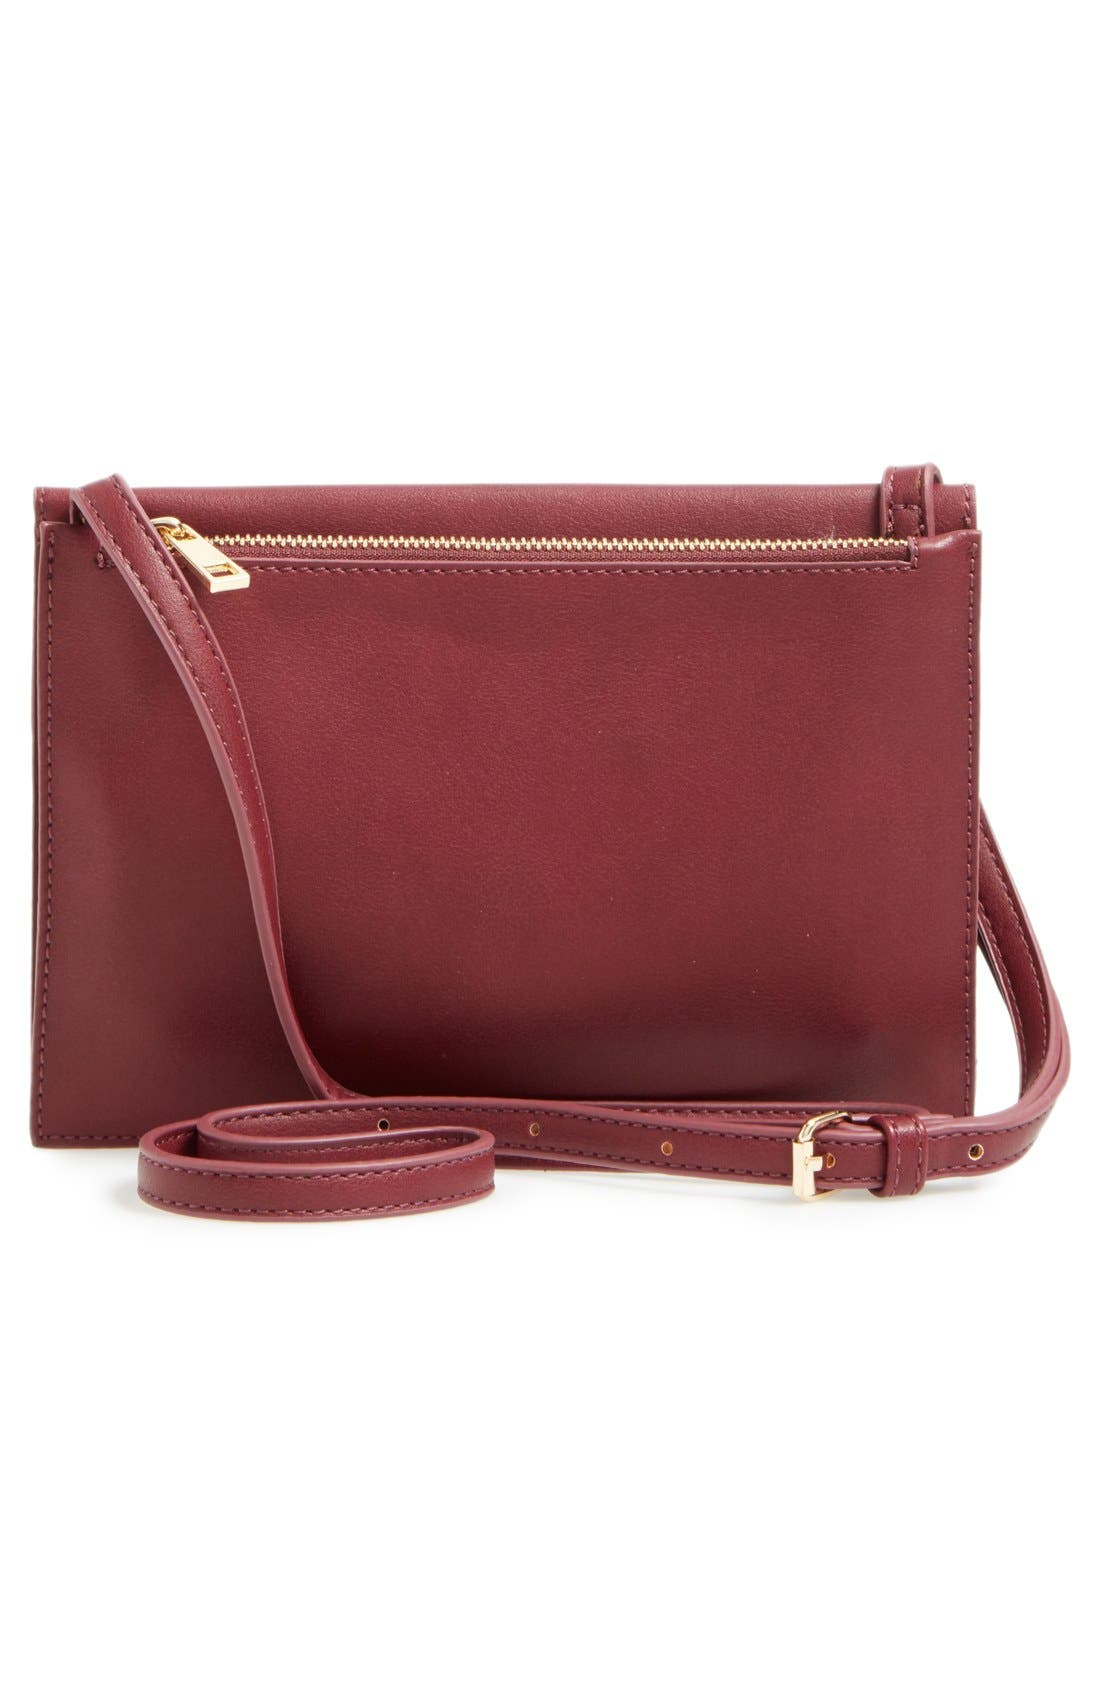 Alternate Image 3  - Sole Society 'Vanessa' Faux Leather Crossbody Bag